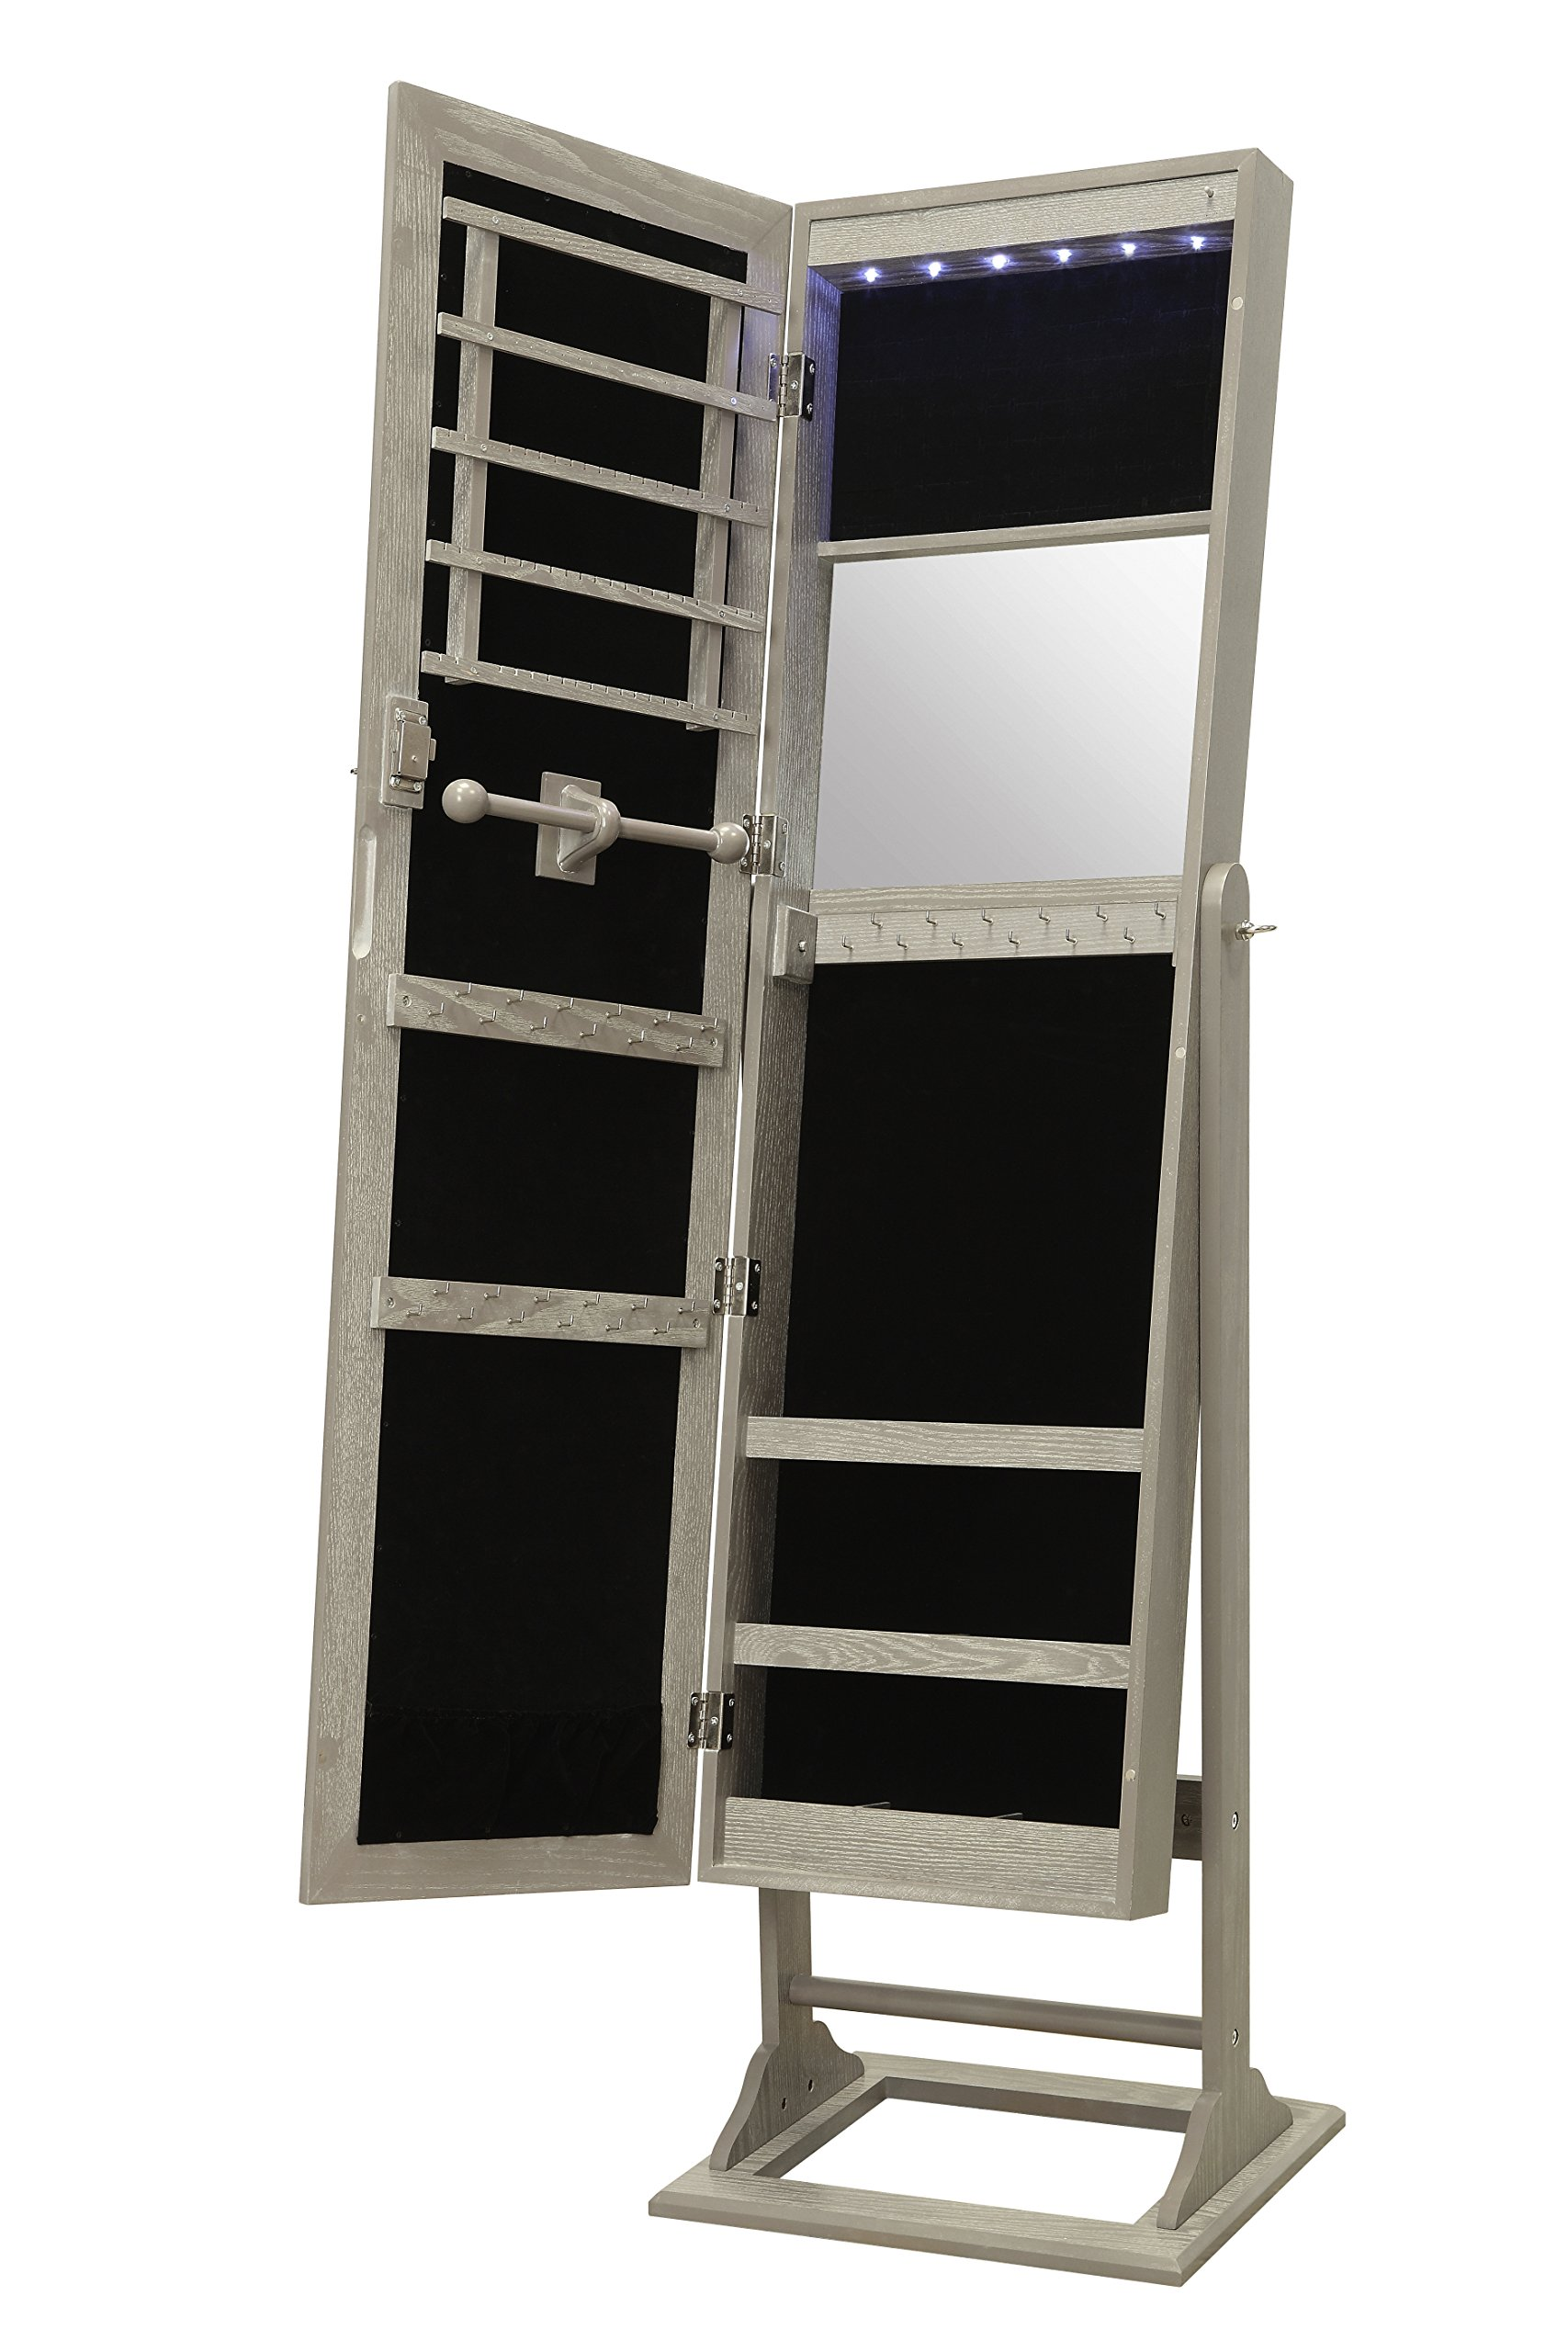 Lockable Standing Jewelry Armoire Cabinet Organizer with Mirror and LED Lights by Abington Lane